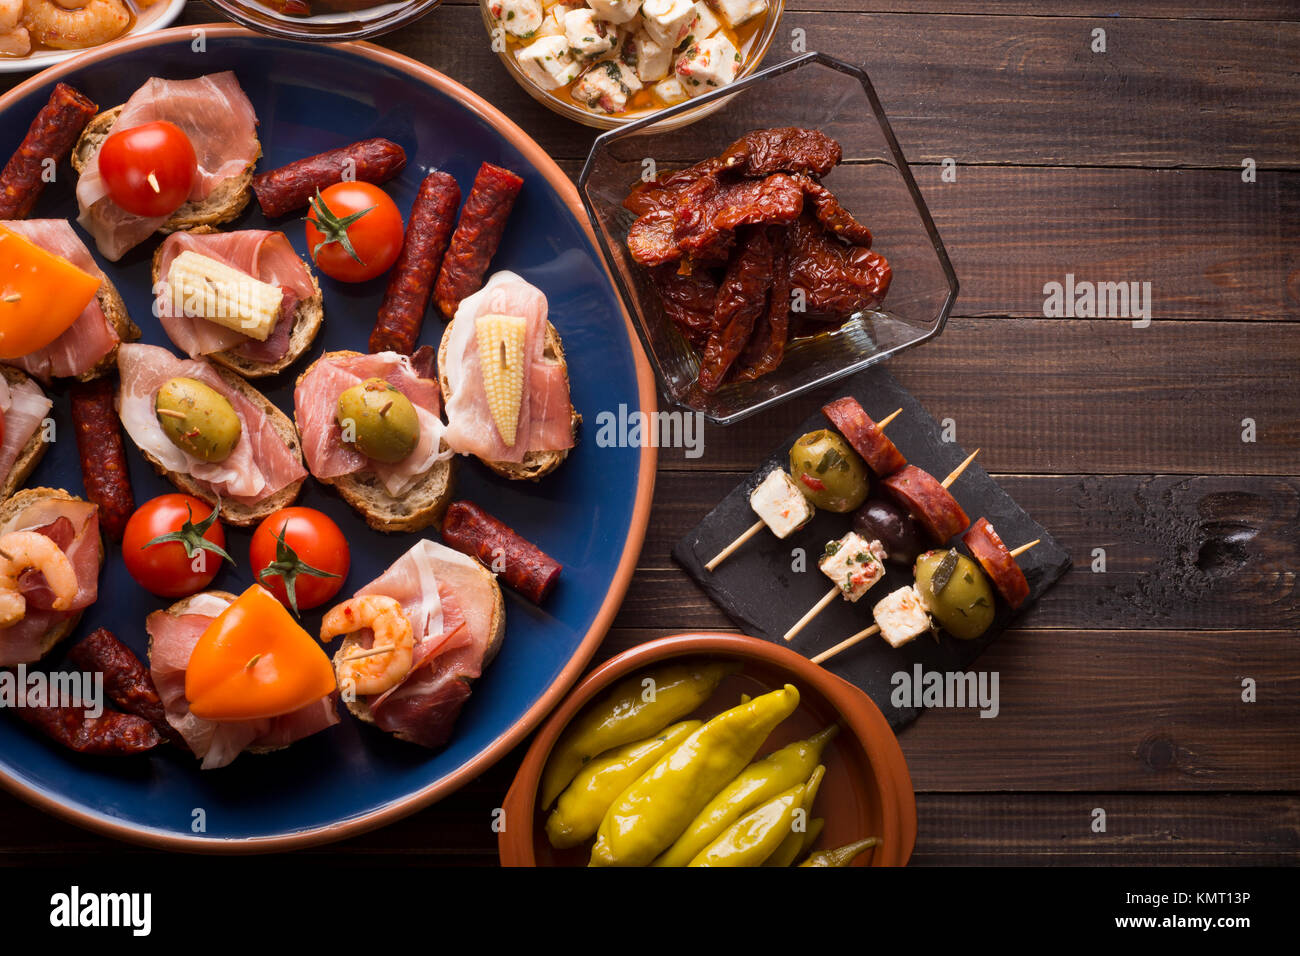 Sharing mixed spanish tapas starters on table. Top view. Copy space - Stock Image